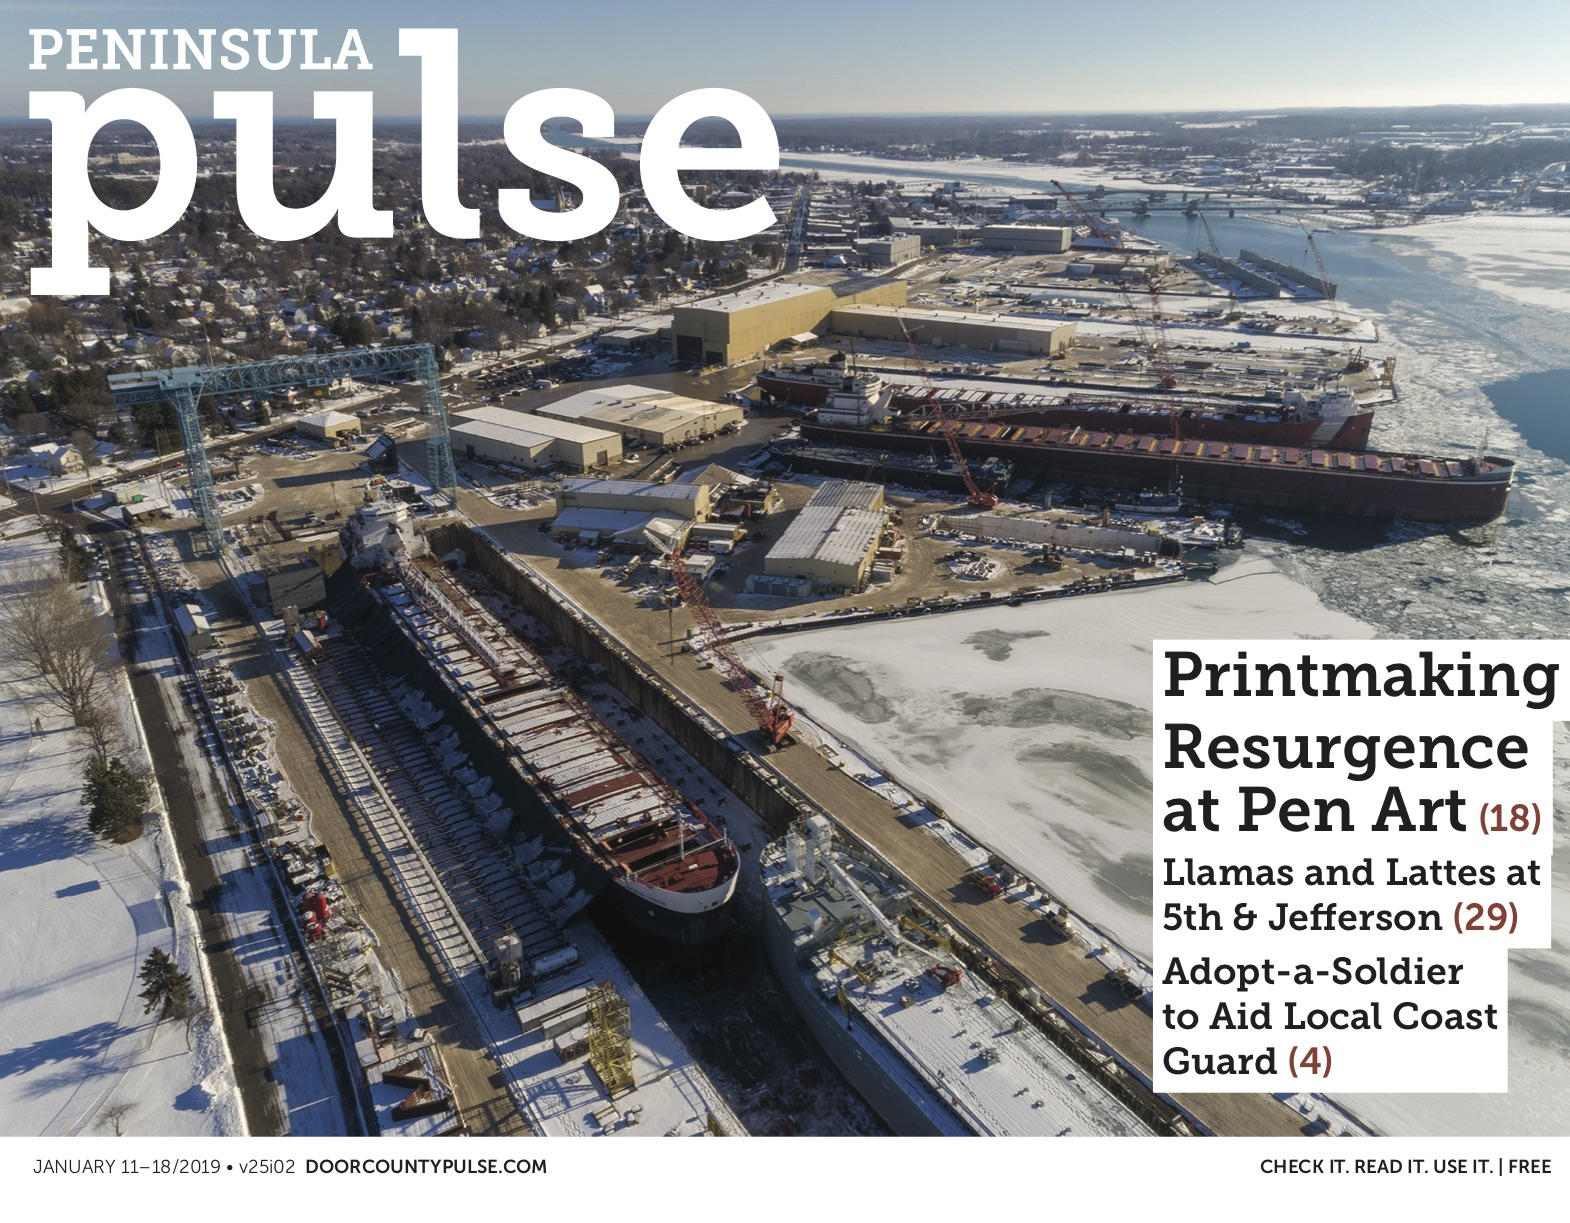 Peninsula Pulse January 11 18 2019 Door County Pulse Did you scroll all this way to get facts about marcus parks? peninsula pulse january 11 18 2019